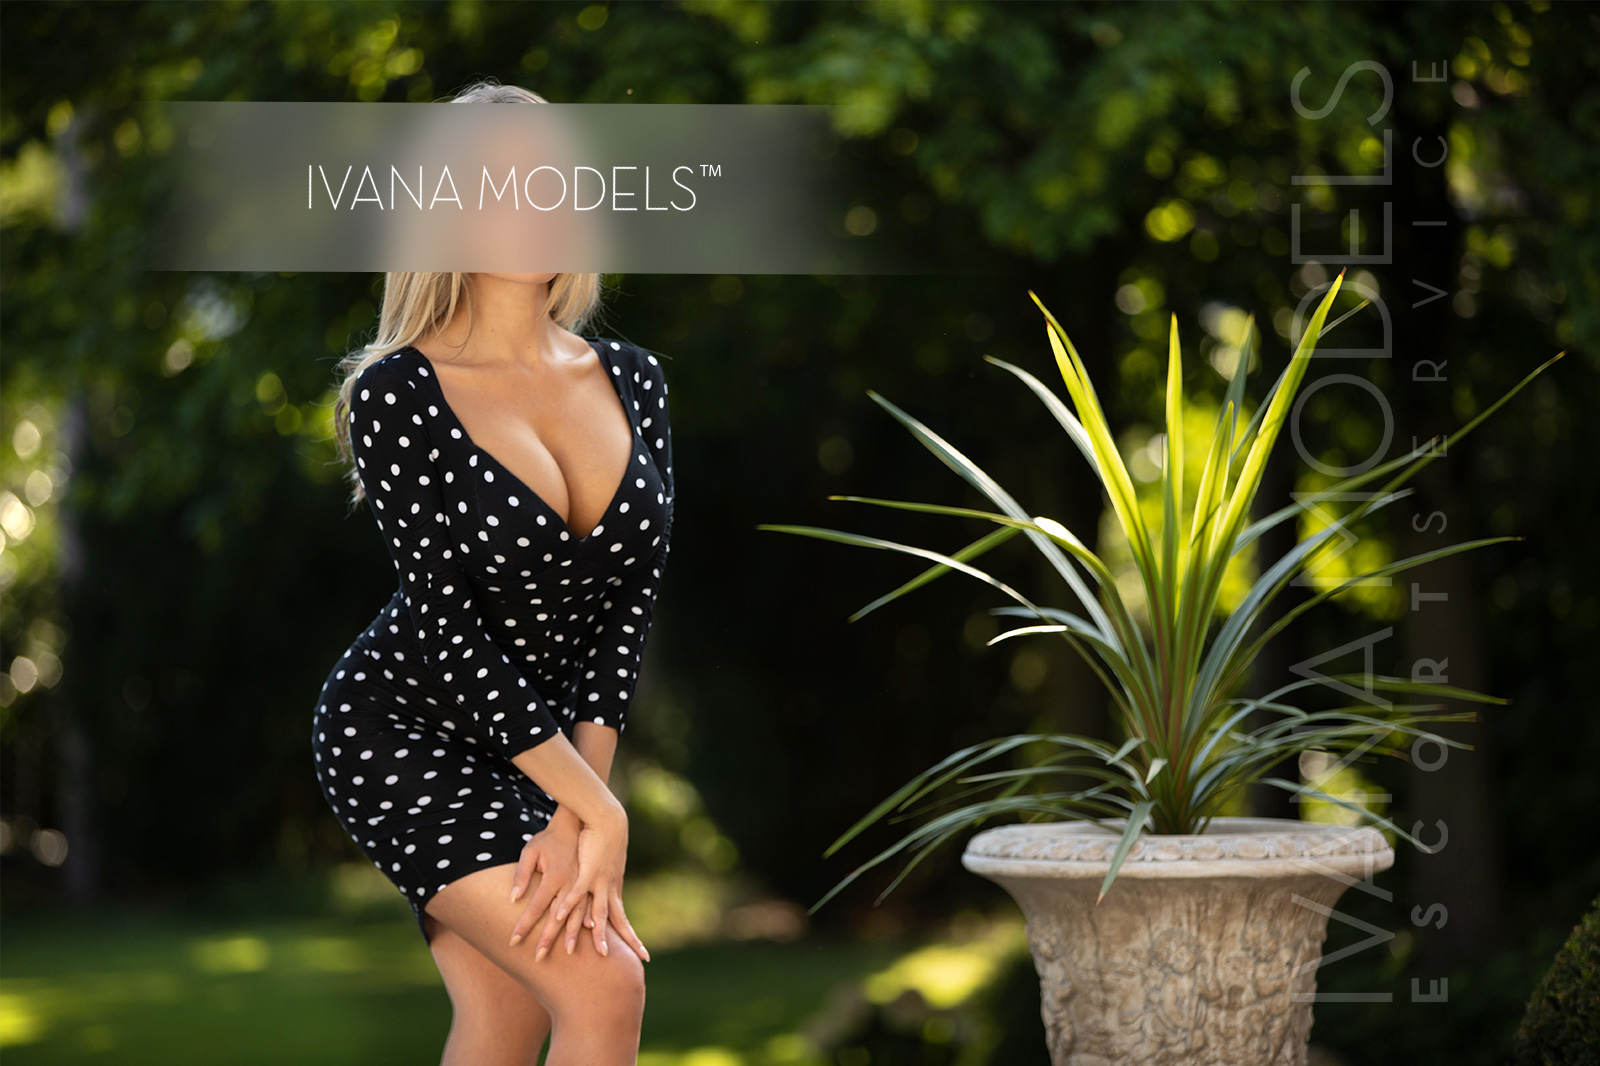 Escort service is about Businessmen, diplomats and managers in high positions - Julia - Escorts Frankfurt